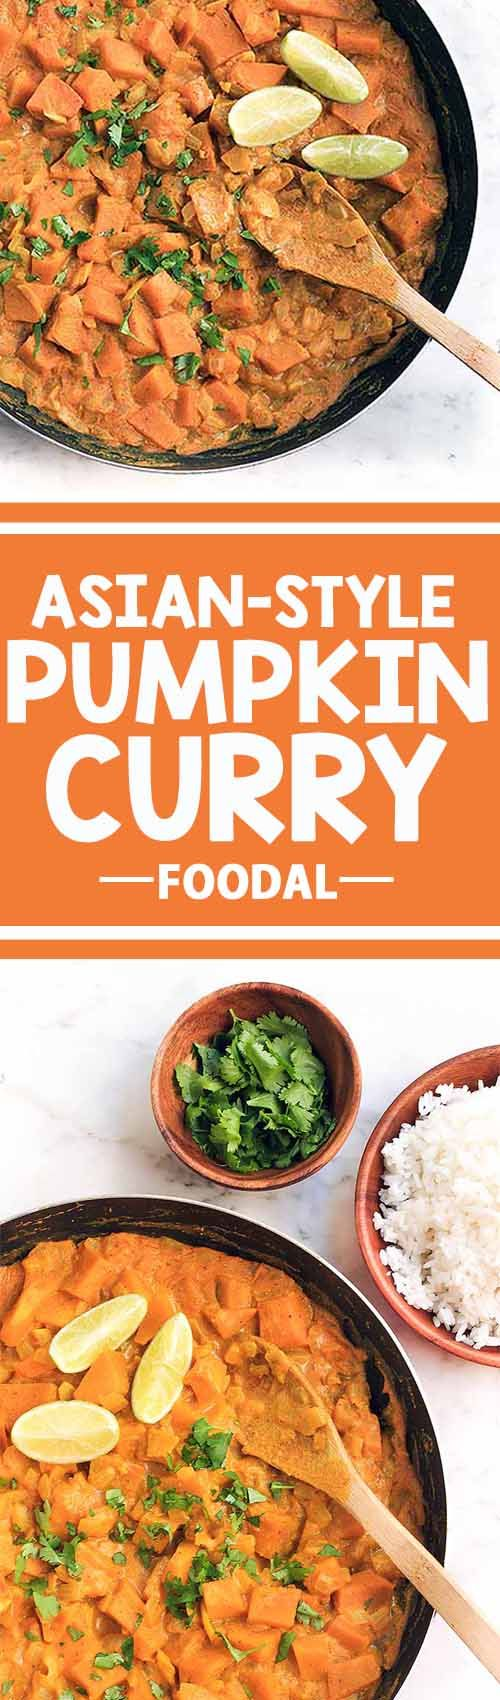 Do you love Asian-style dishes? What about pumpkin? This recipe for pumpkin curry is a combination of both, and it's not only simple to make, but also extremely comforting and filling. Garnished with cilantro and served alongside basmati rice, this makes the perfect dinner on a chilly evening. Get the recipe now on Foodal and take a culinary trip to Asia! http://foodal.com/recipes/vegetarian-vegan/asian-style-pumpkin-curry/